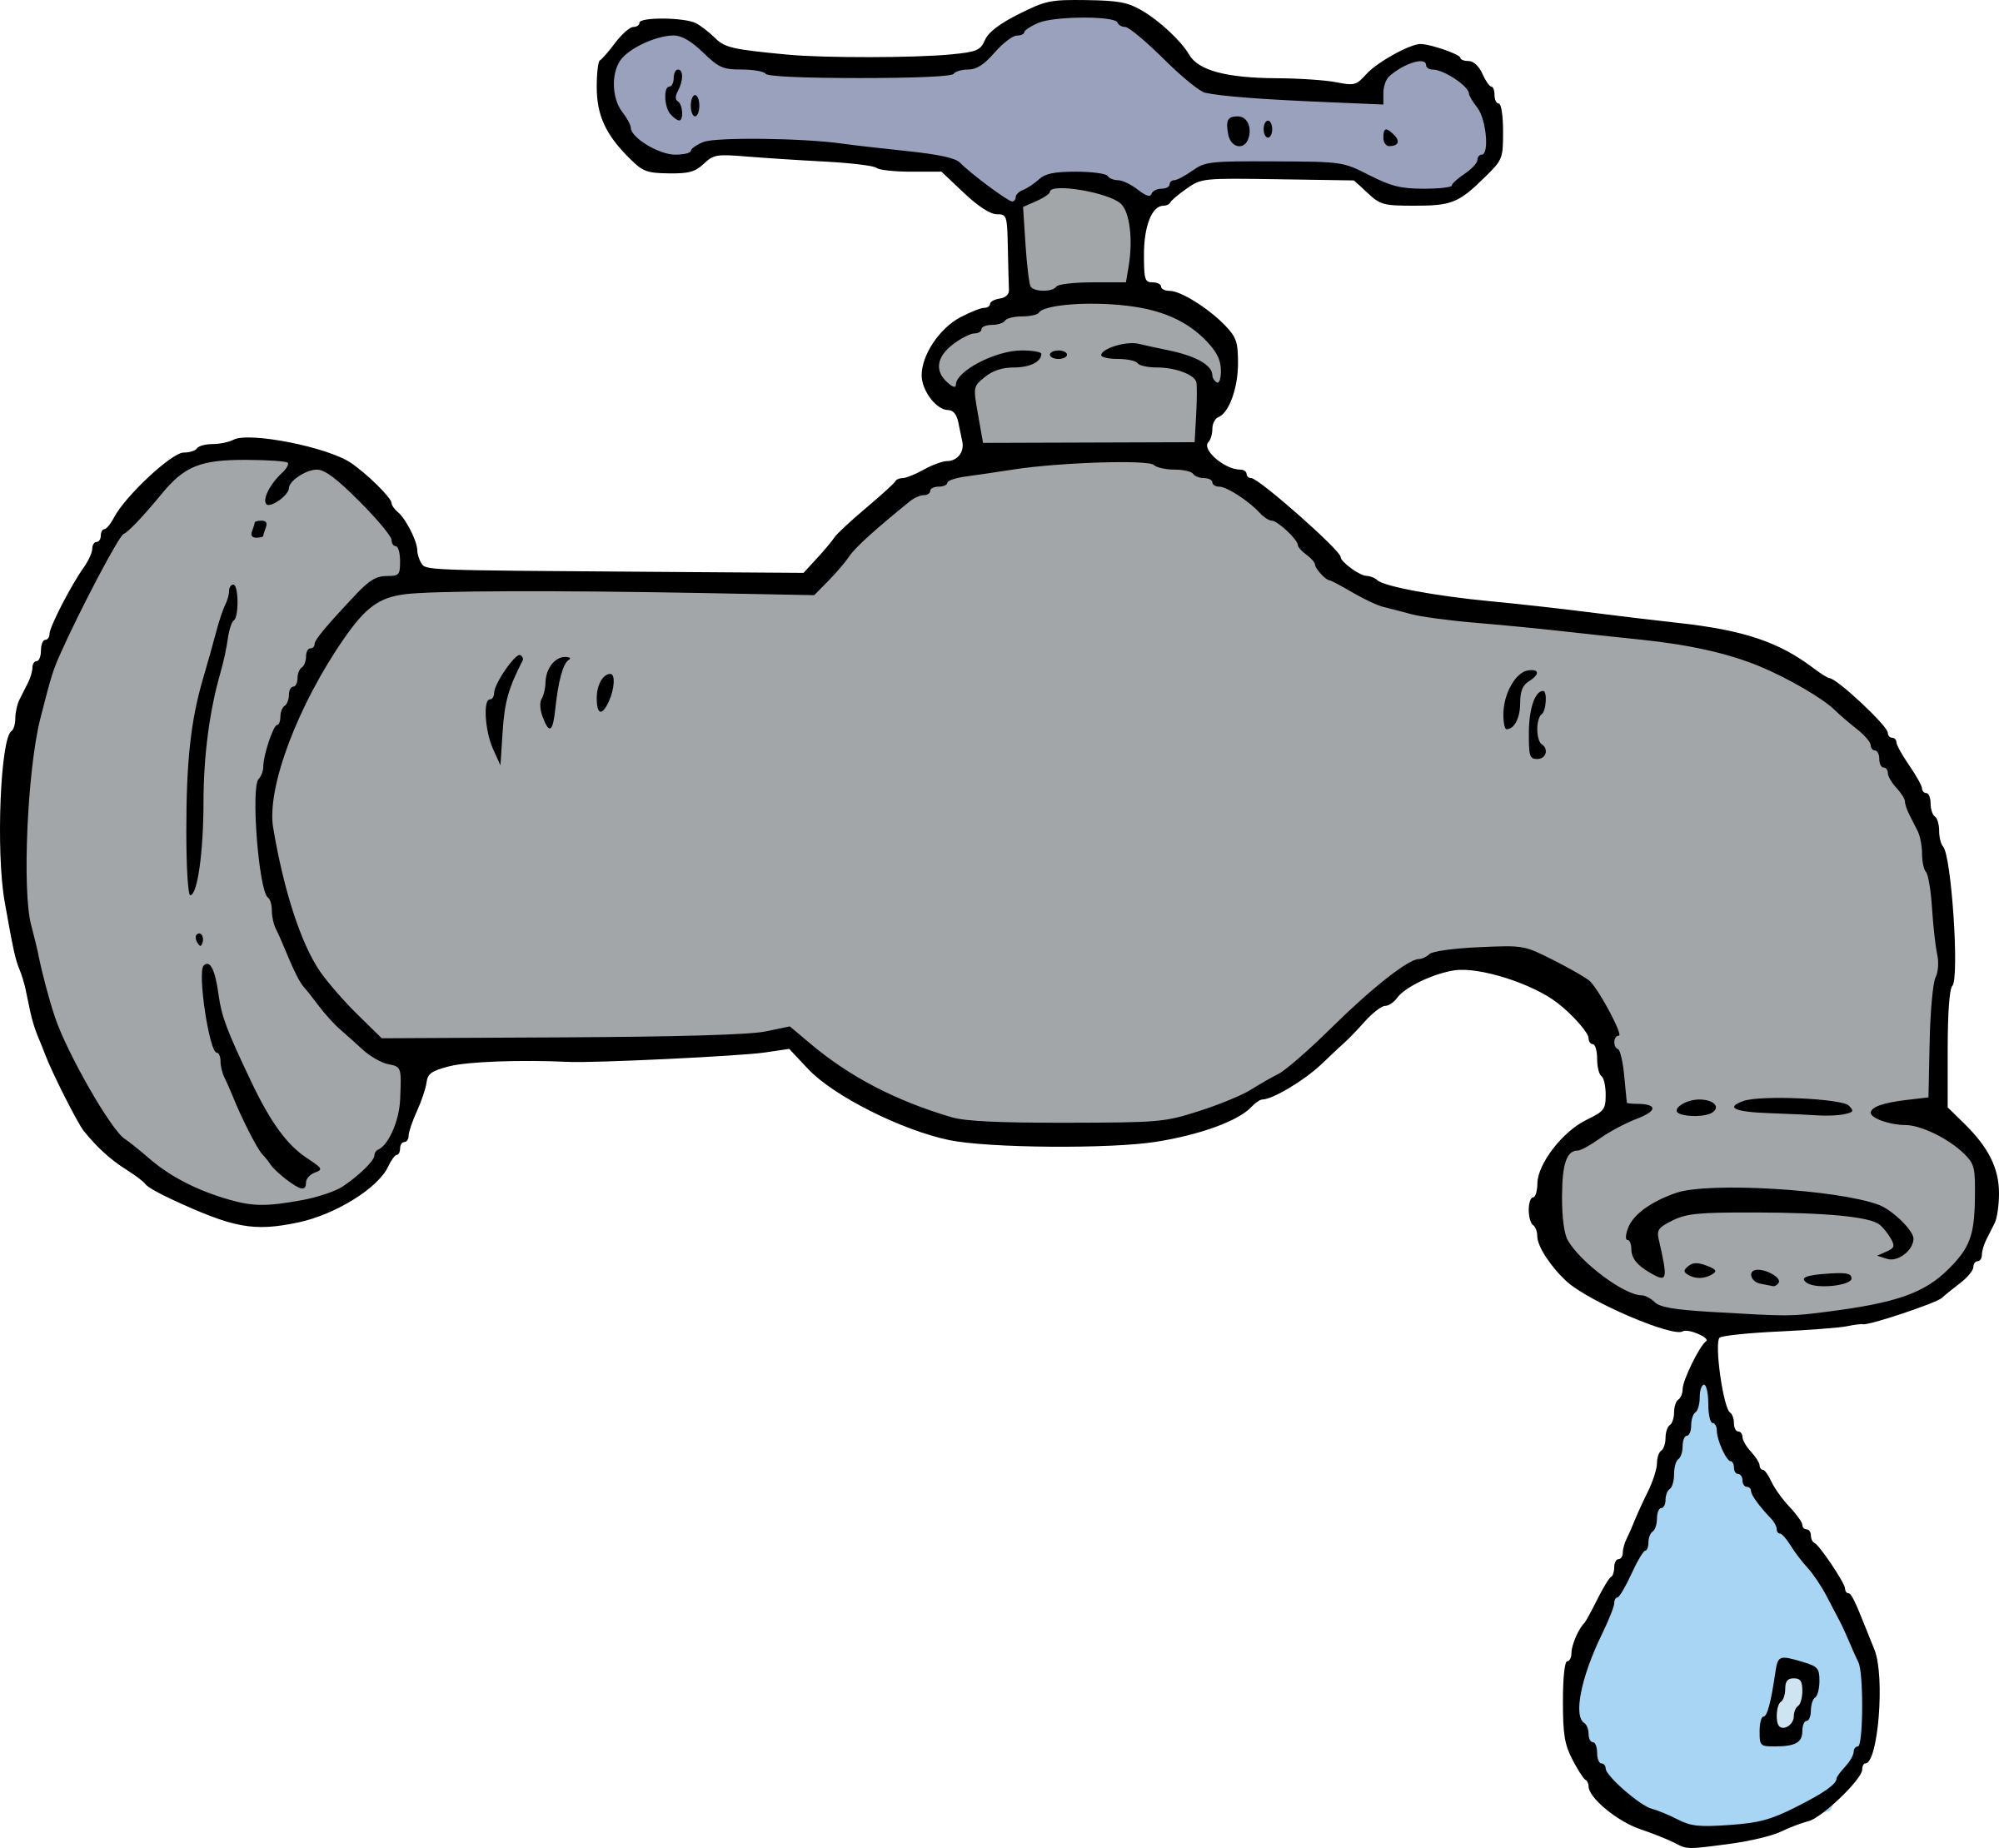 Faucet clipart transparent. Water icons png free